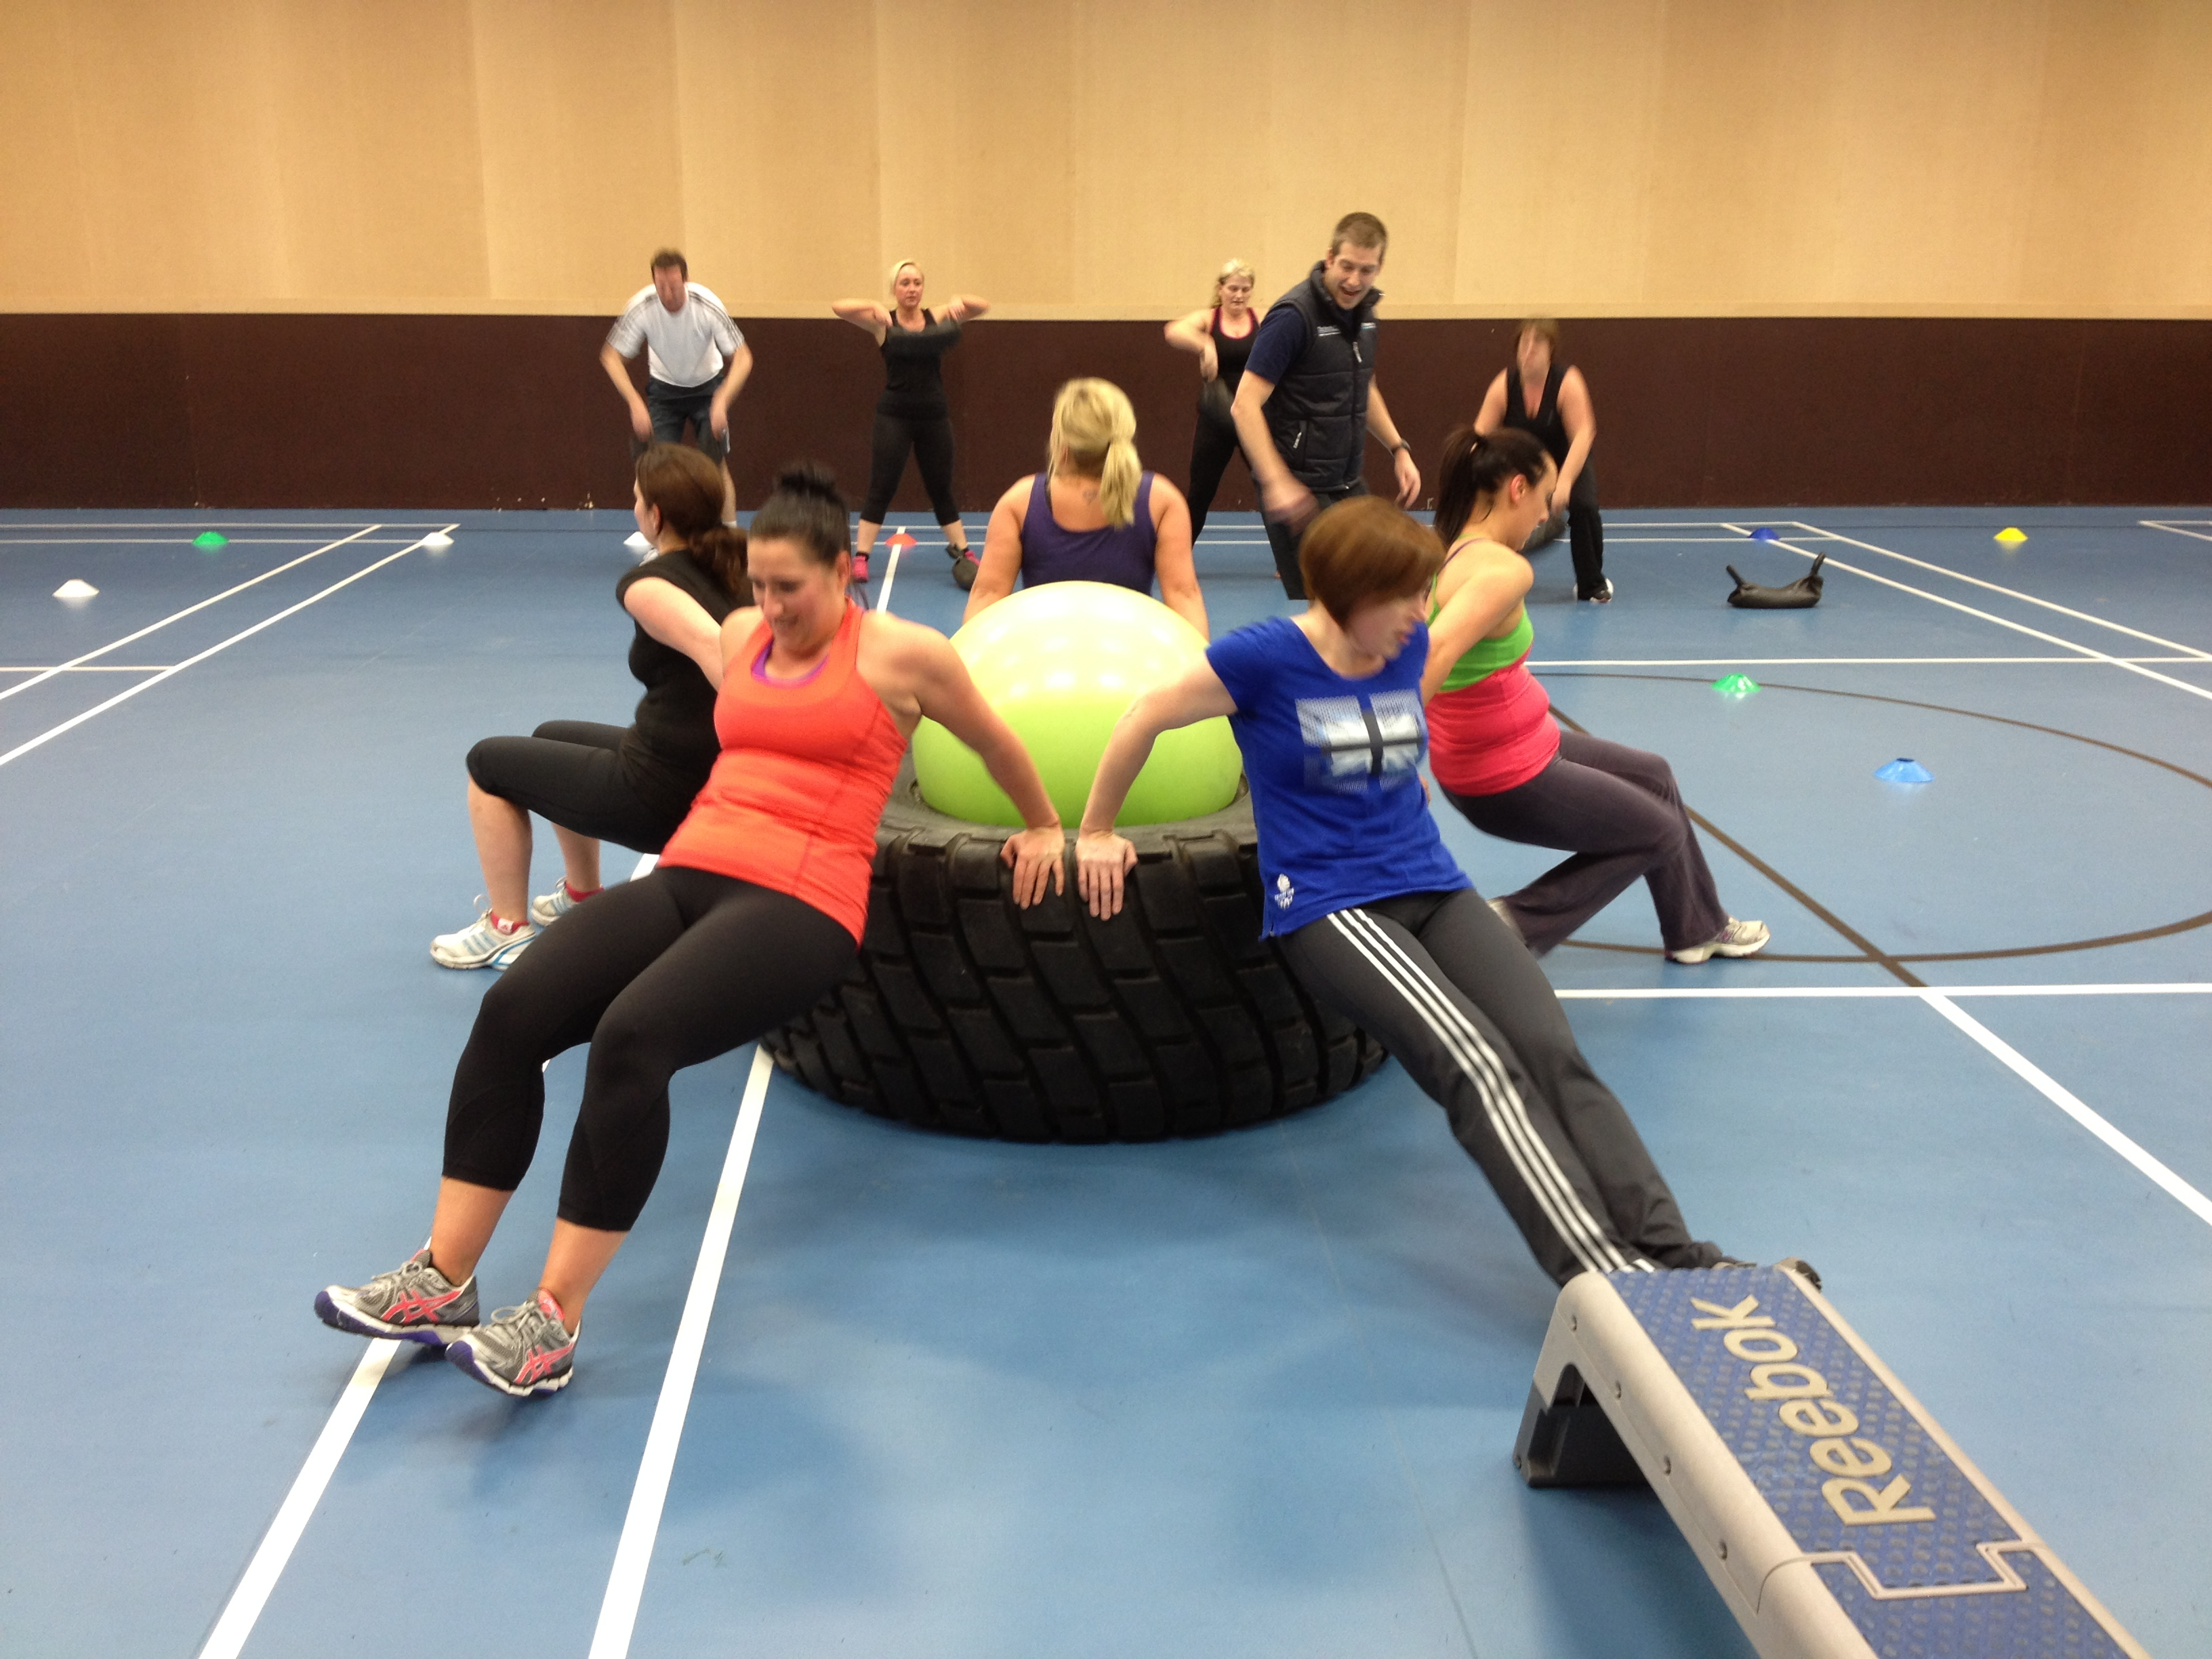 compound and isolation exercises, The Handy Plan, Weight Loss Group, Stockport Personal Trainer, Health Club Stockport, Personal Training, Weight Loss, Diet, Nutrition